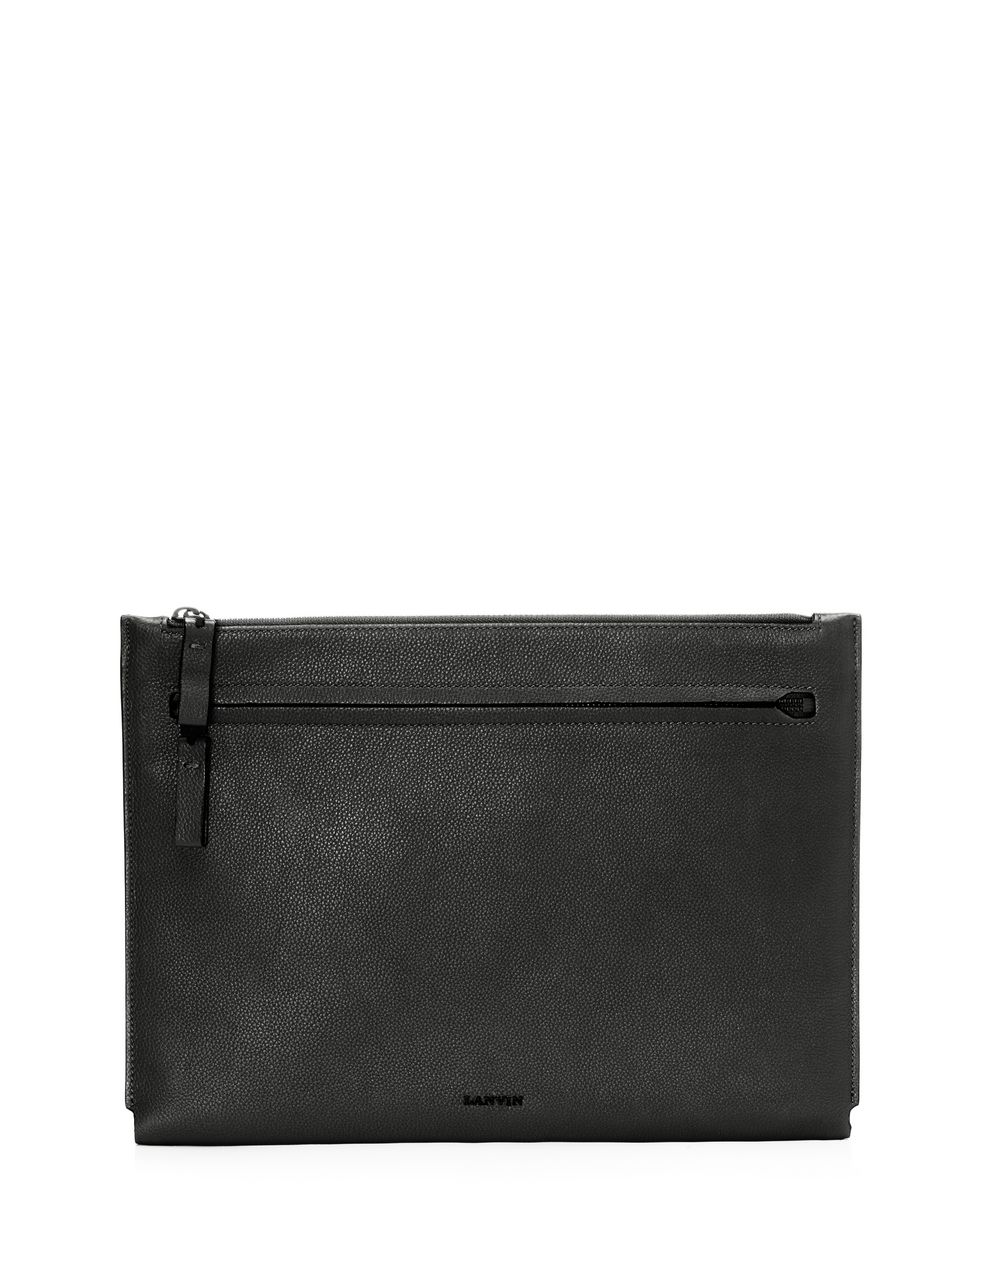 Clutch in natural grain calfskin - Lanvin